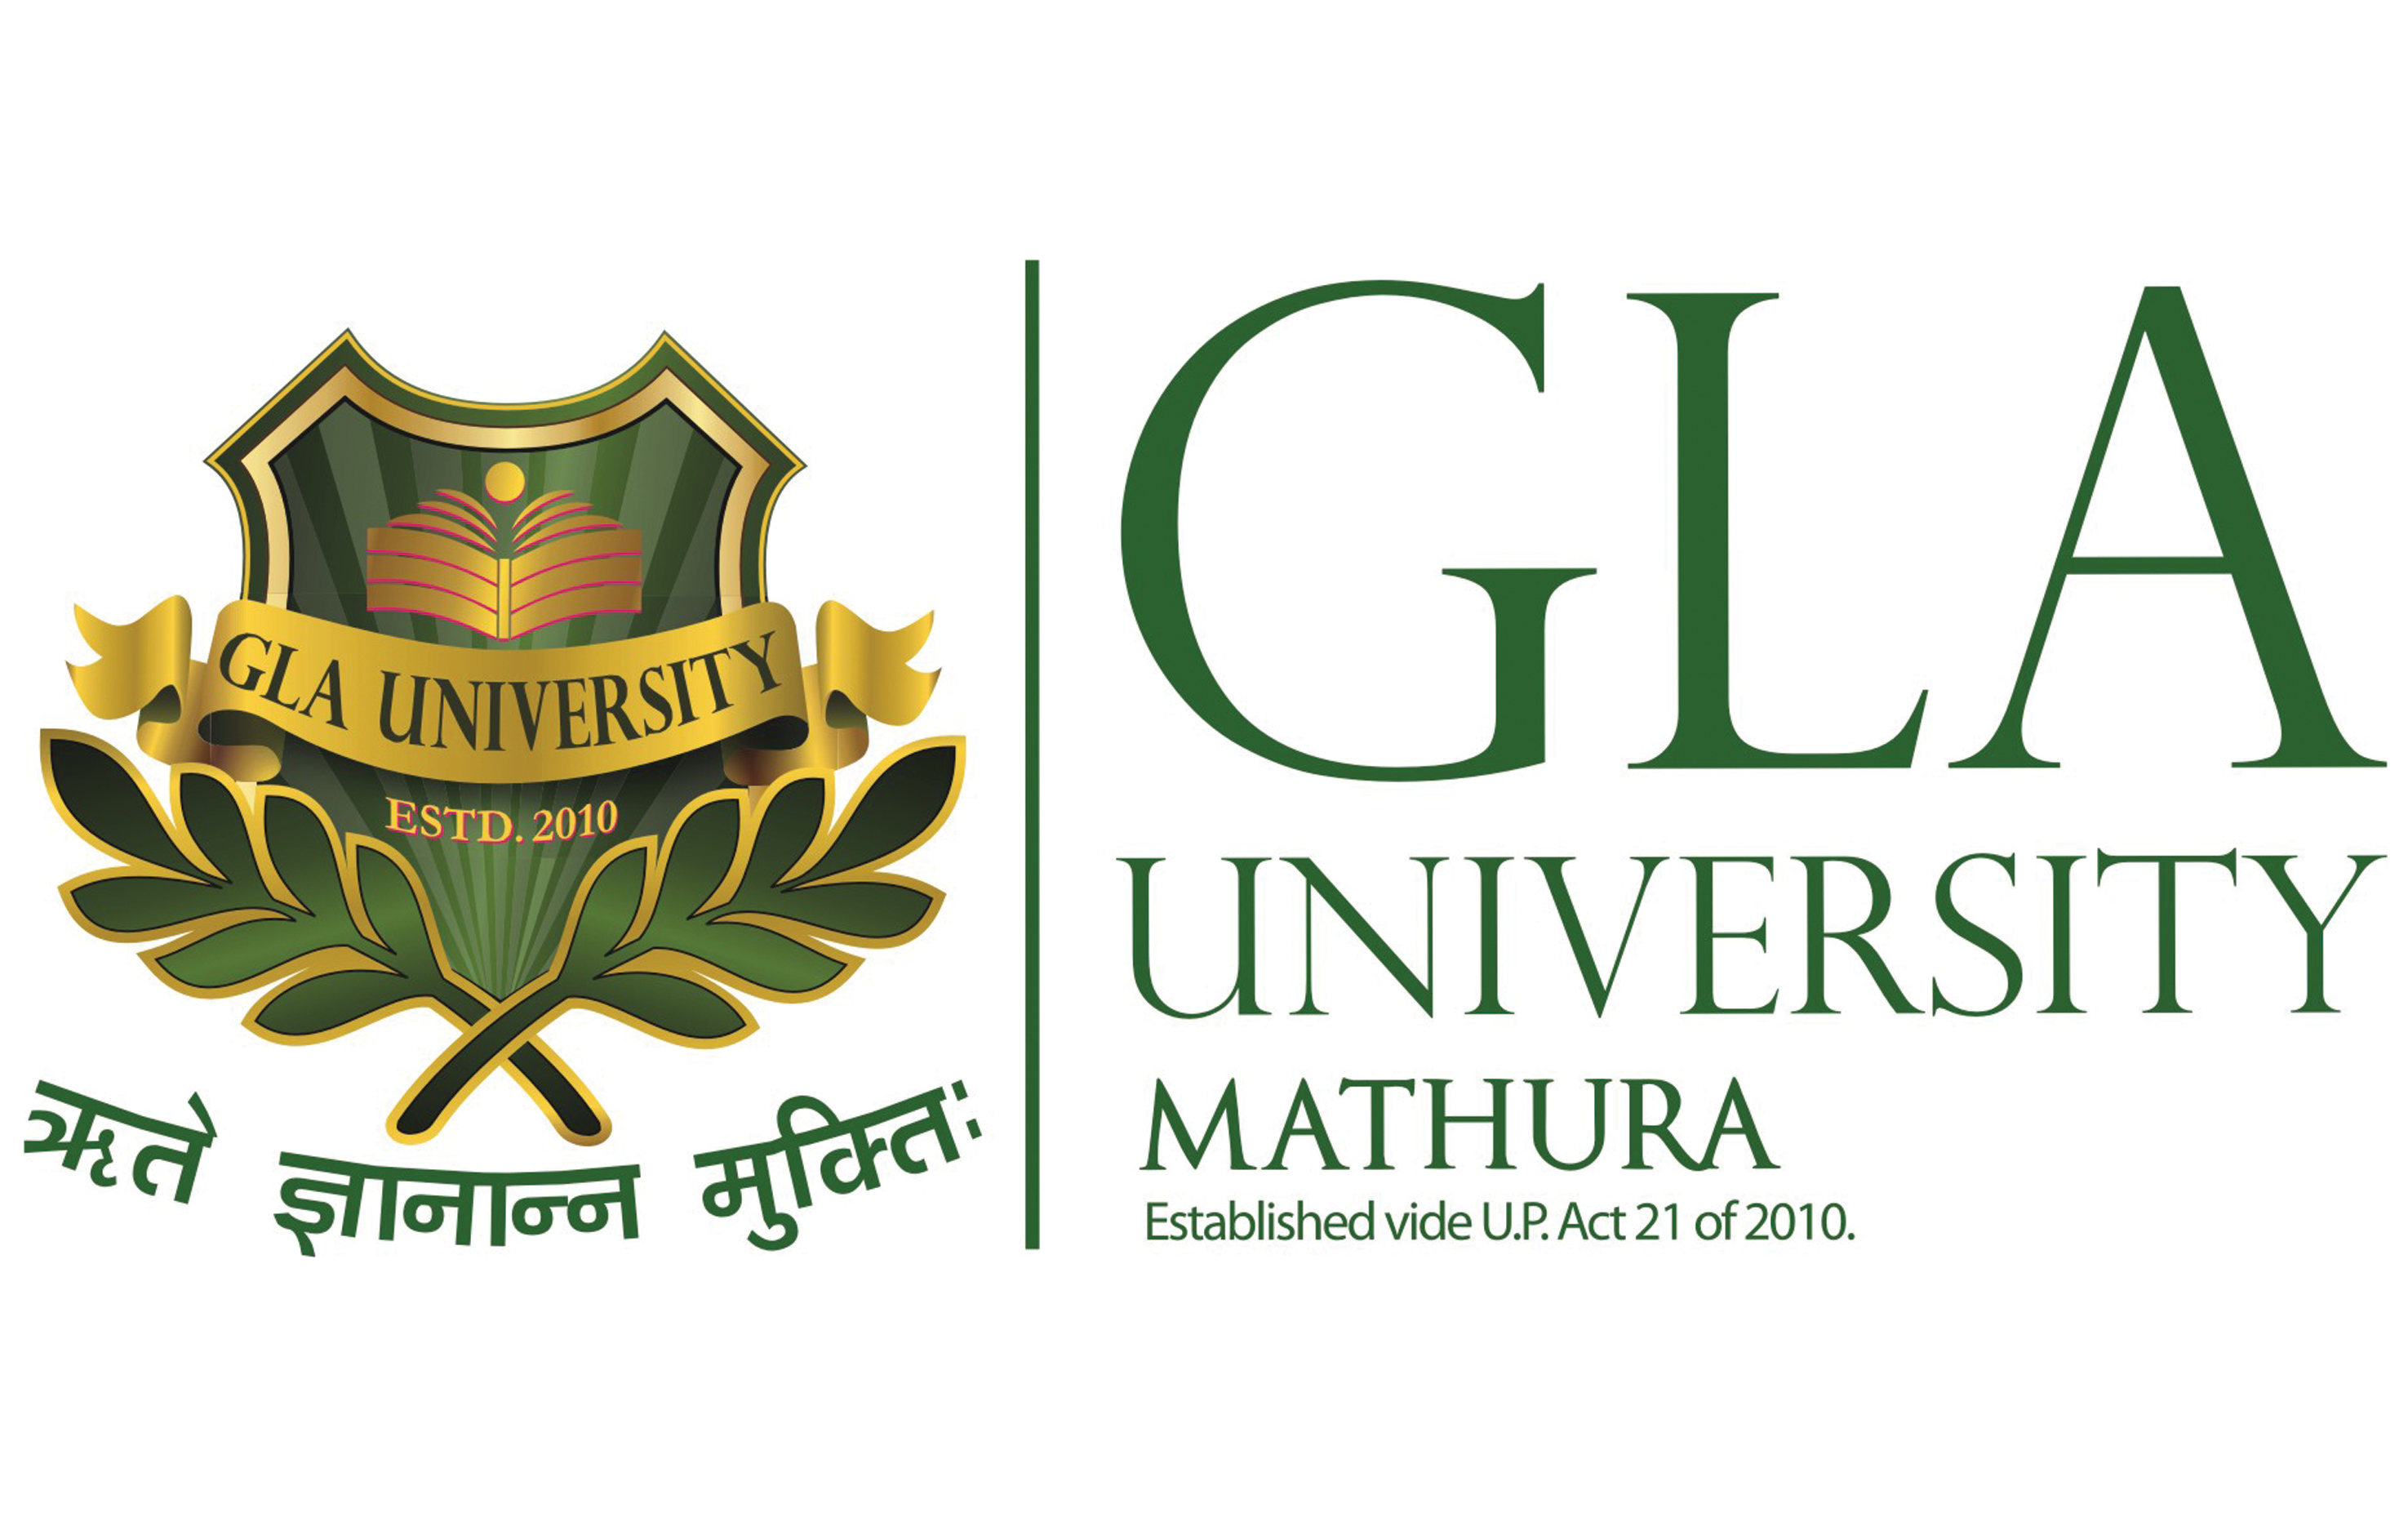 GLA University - Mathura Image